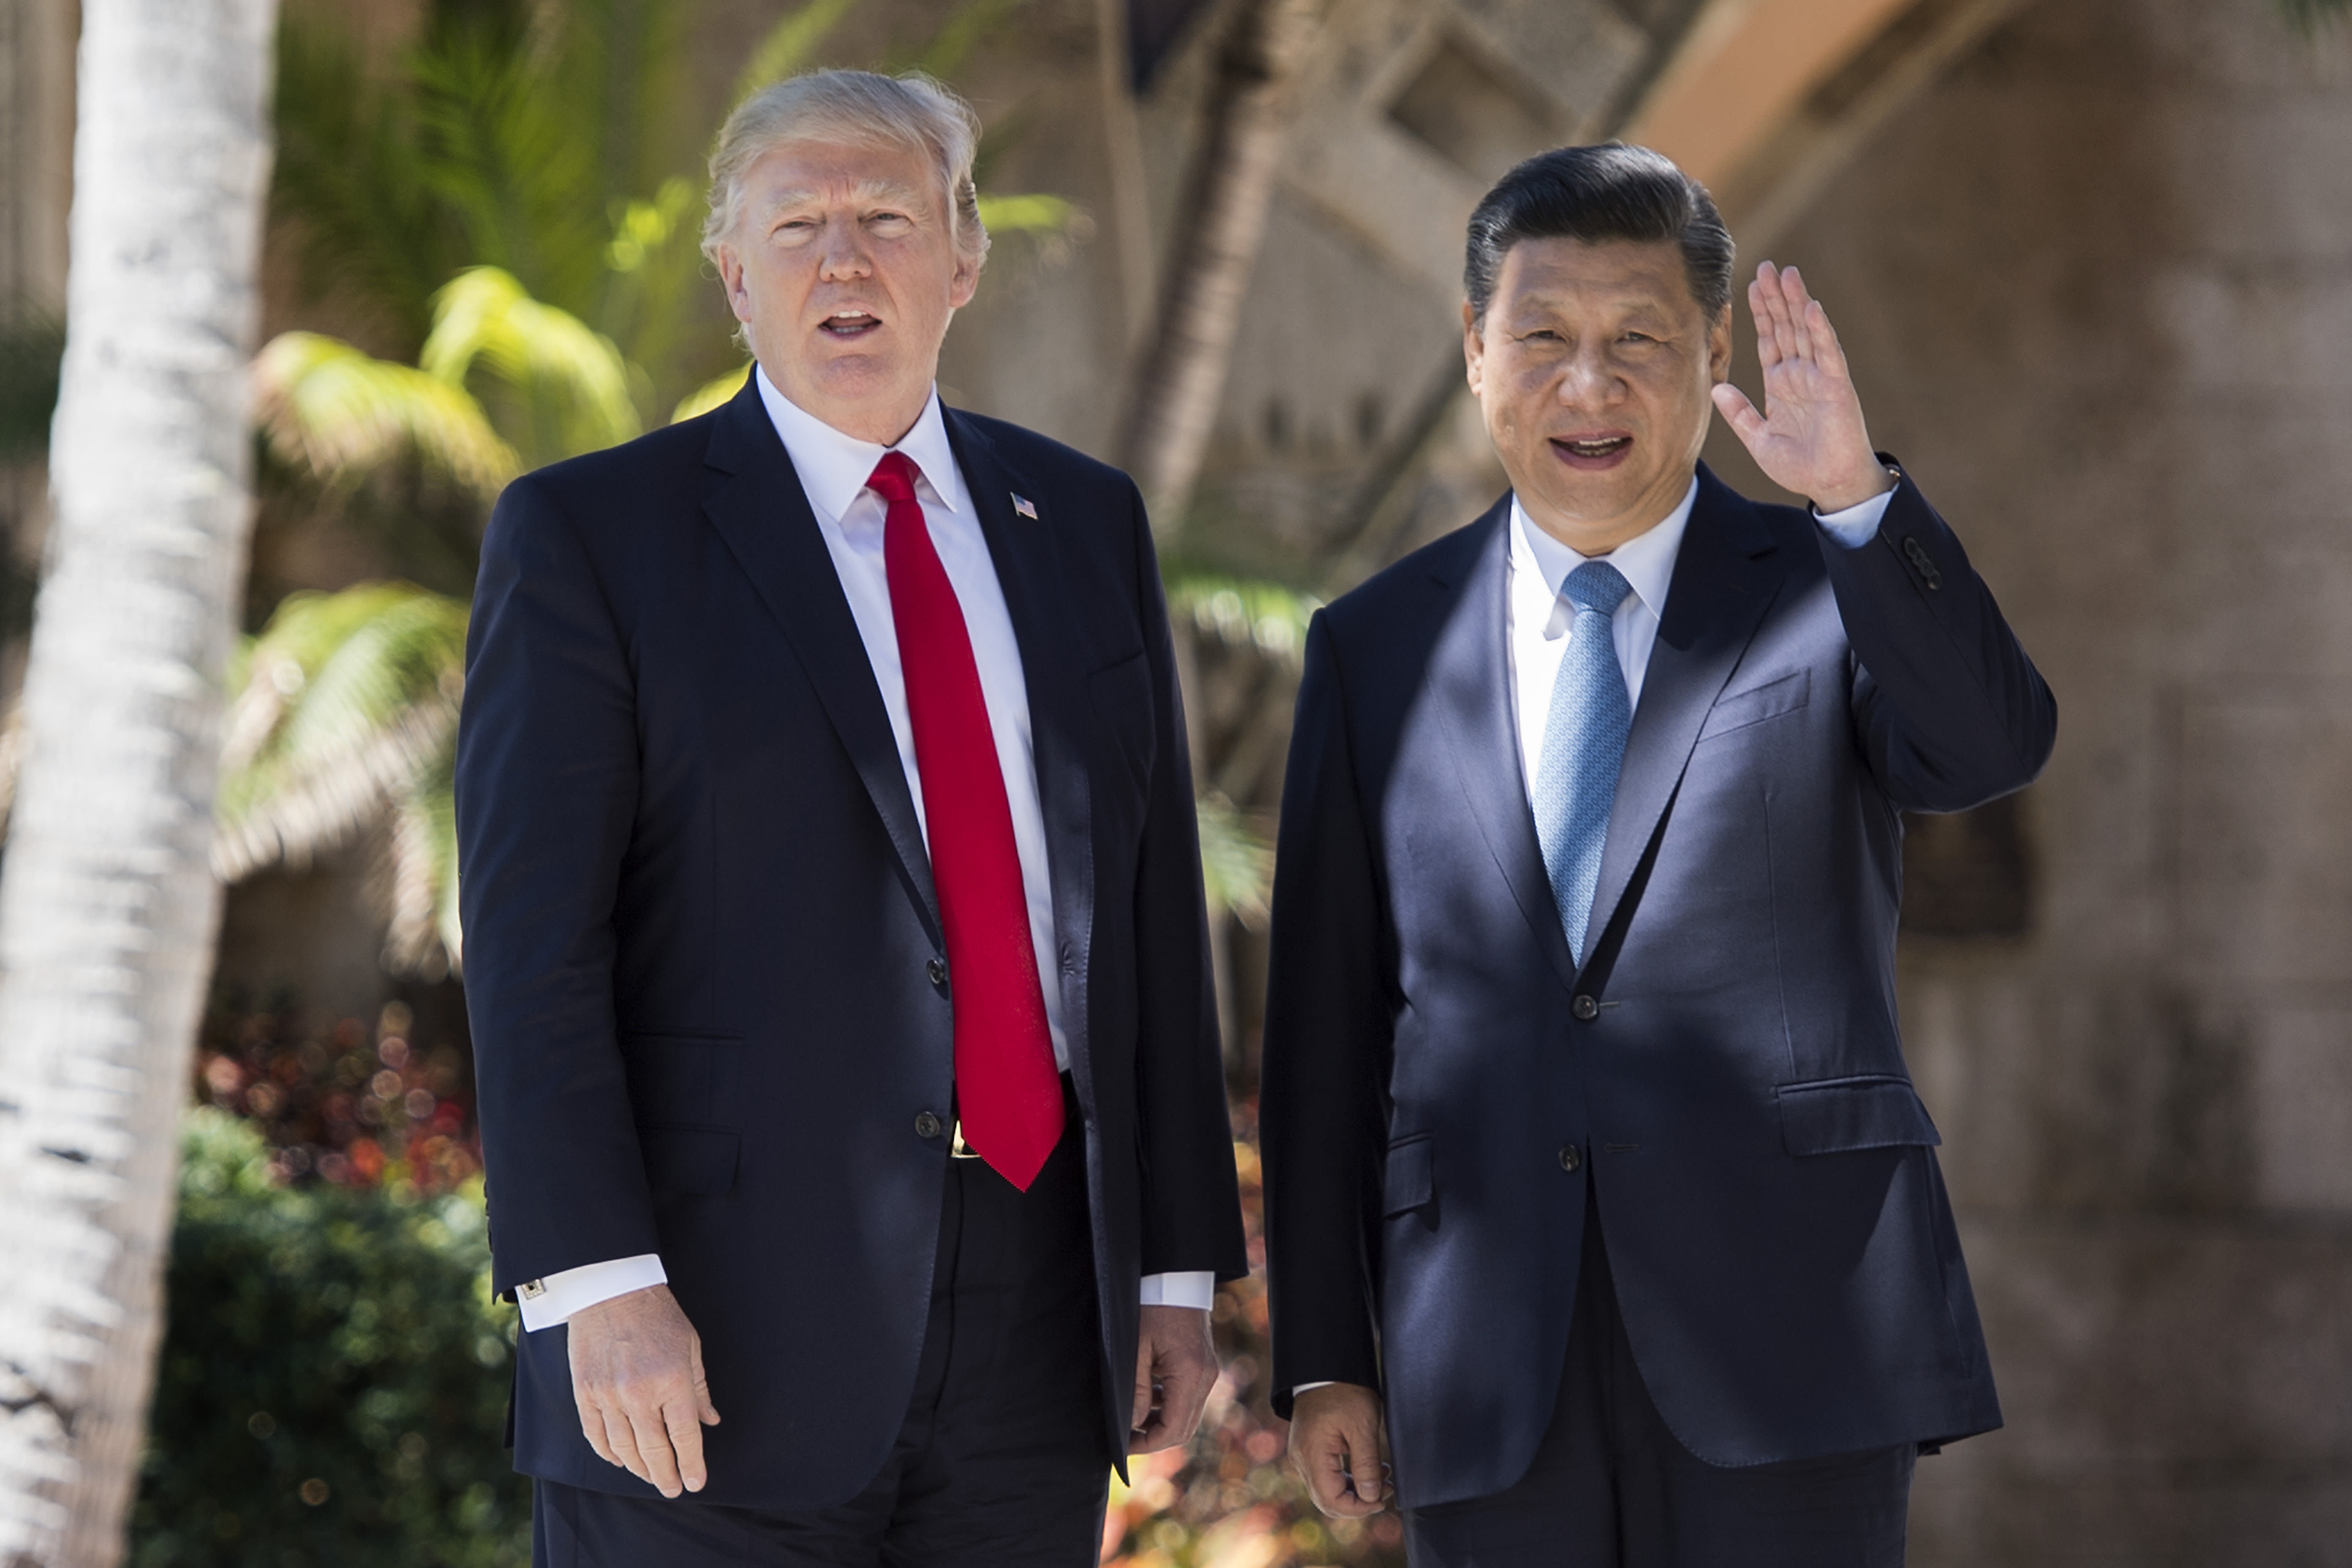 Chinese President Xi Jinping (R) waves to the press as he walks with US President Donald Trump at the Mar-a-Lago estate in West Palm Beach, Florida, April 7, 2017.